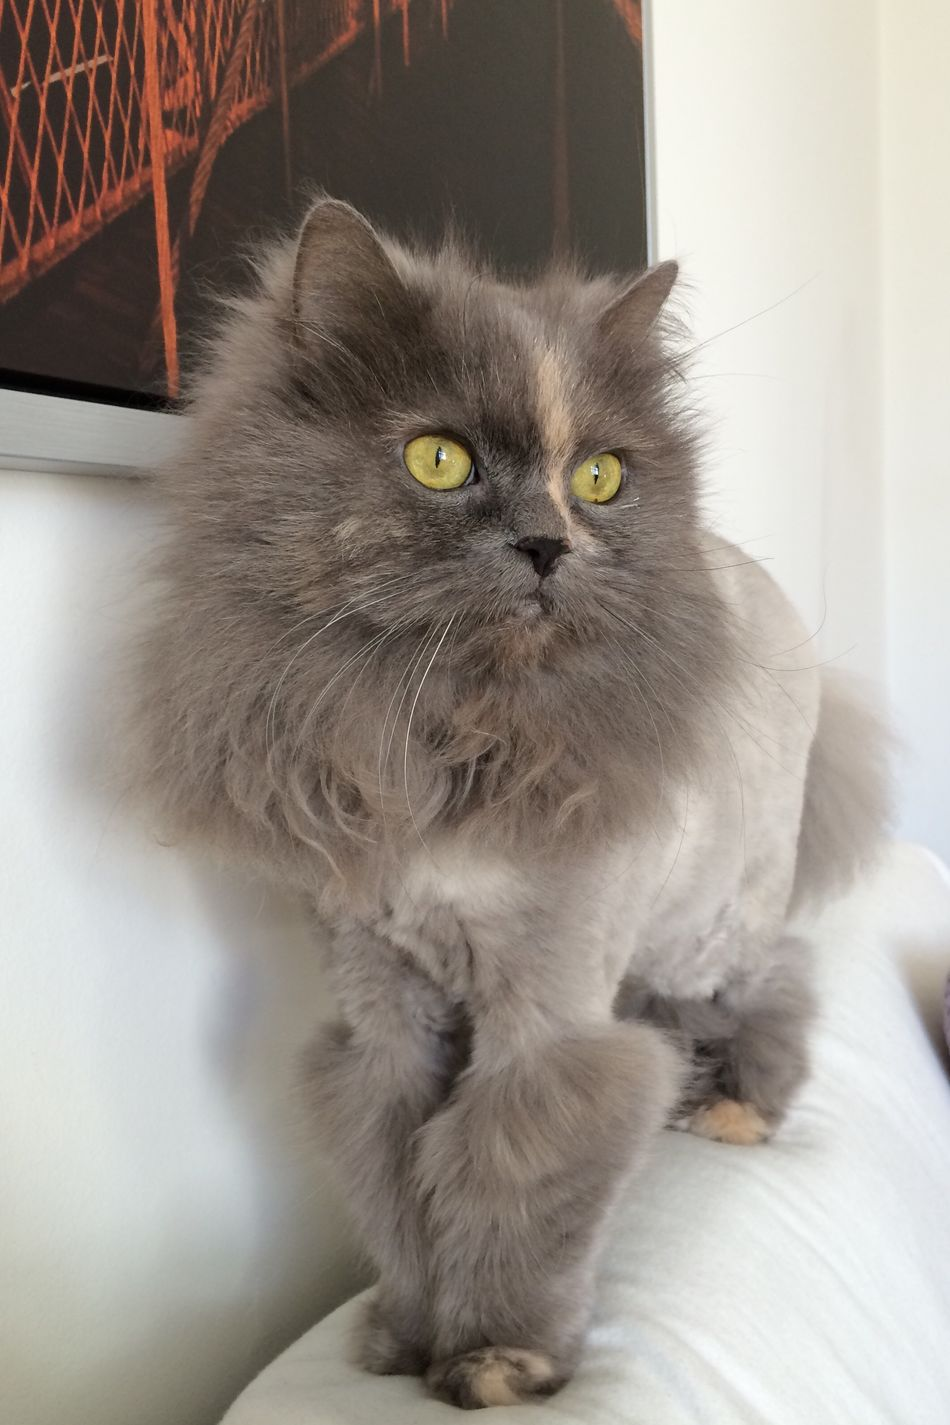 Domestic Animals Domestic Cat Close-up Feline Longhaired Cats Persian Mix So Sweet Soft Beauty Love Most Beautiful Cat In The World My Ofelia Copenhagen, Denmark Cat Pets Animal Themes Lion Cut So Beautiful  Pets We Love Cozy Cats